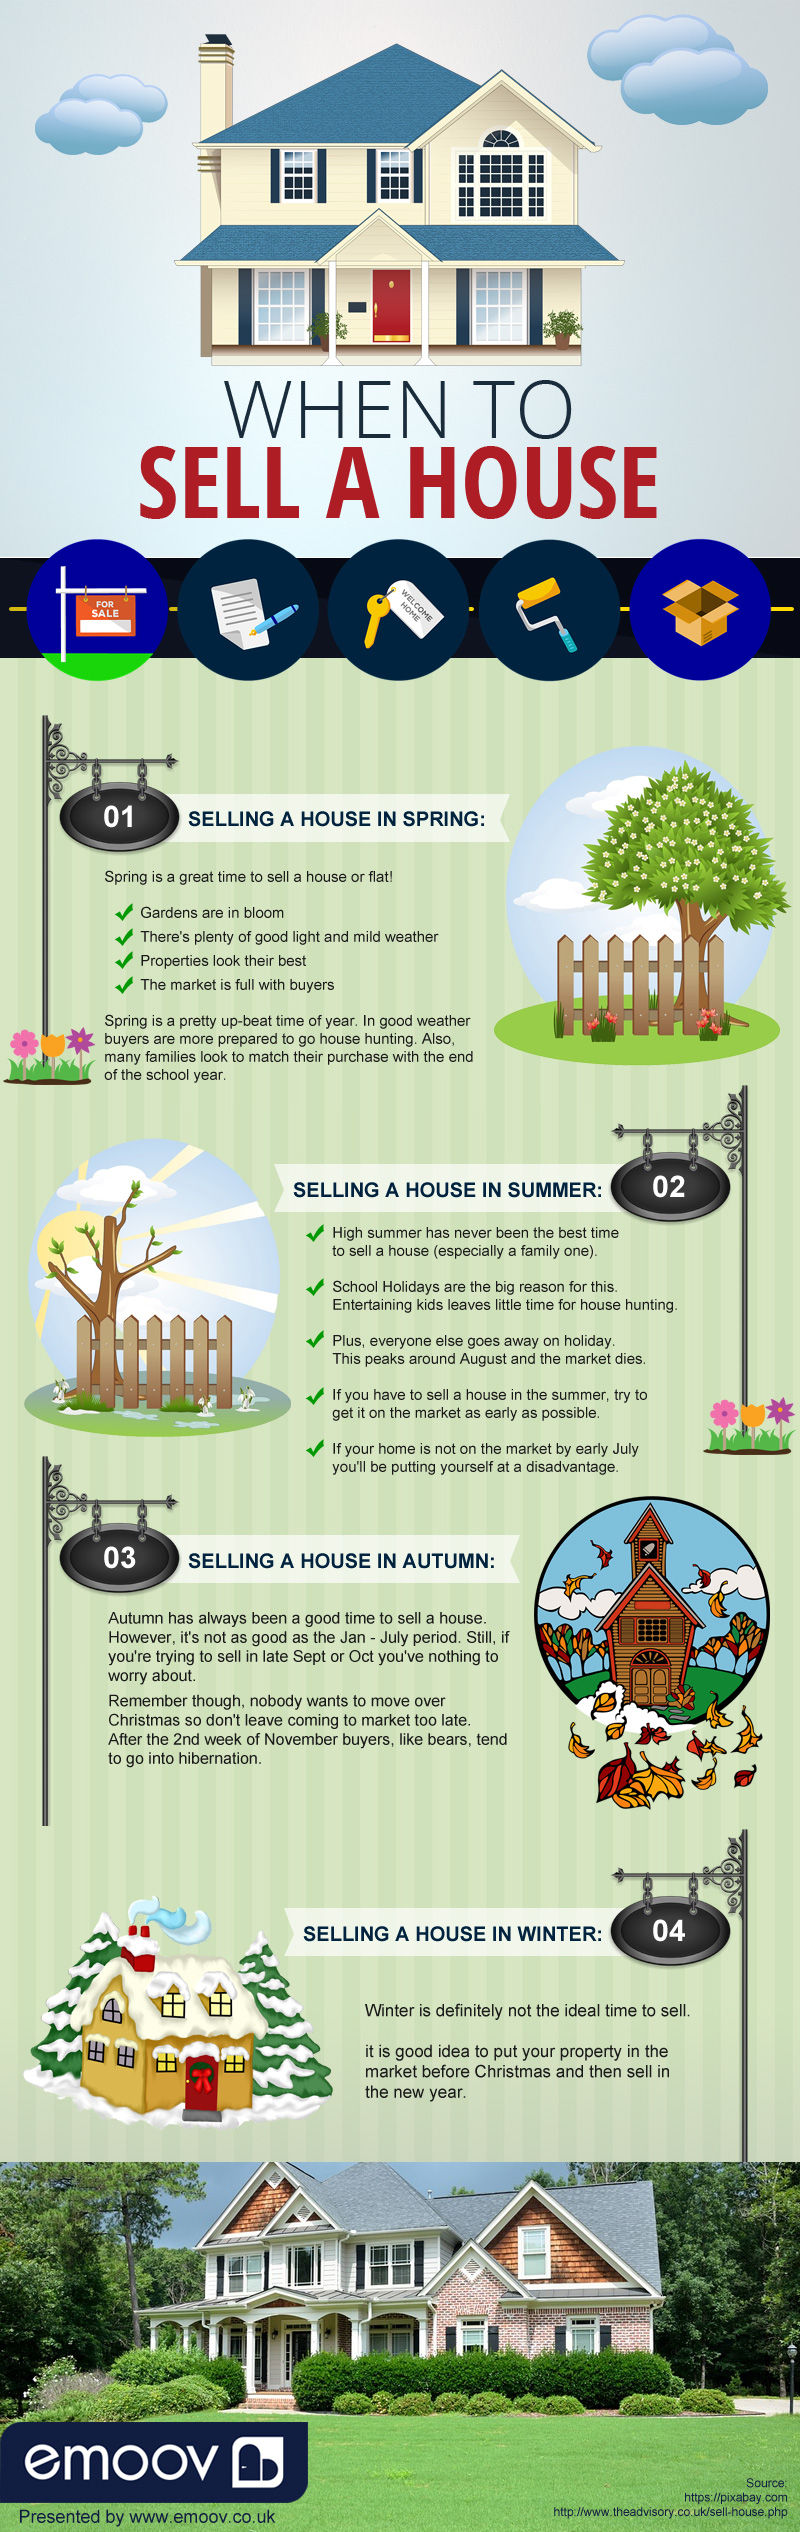 When to Sell a House [Infographic]